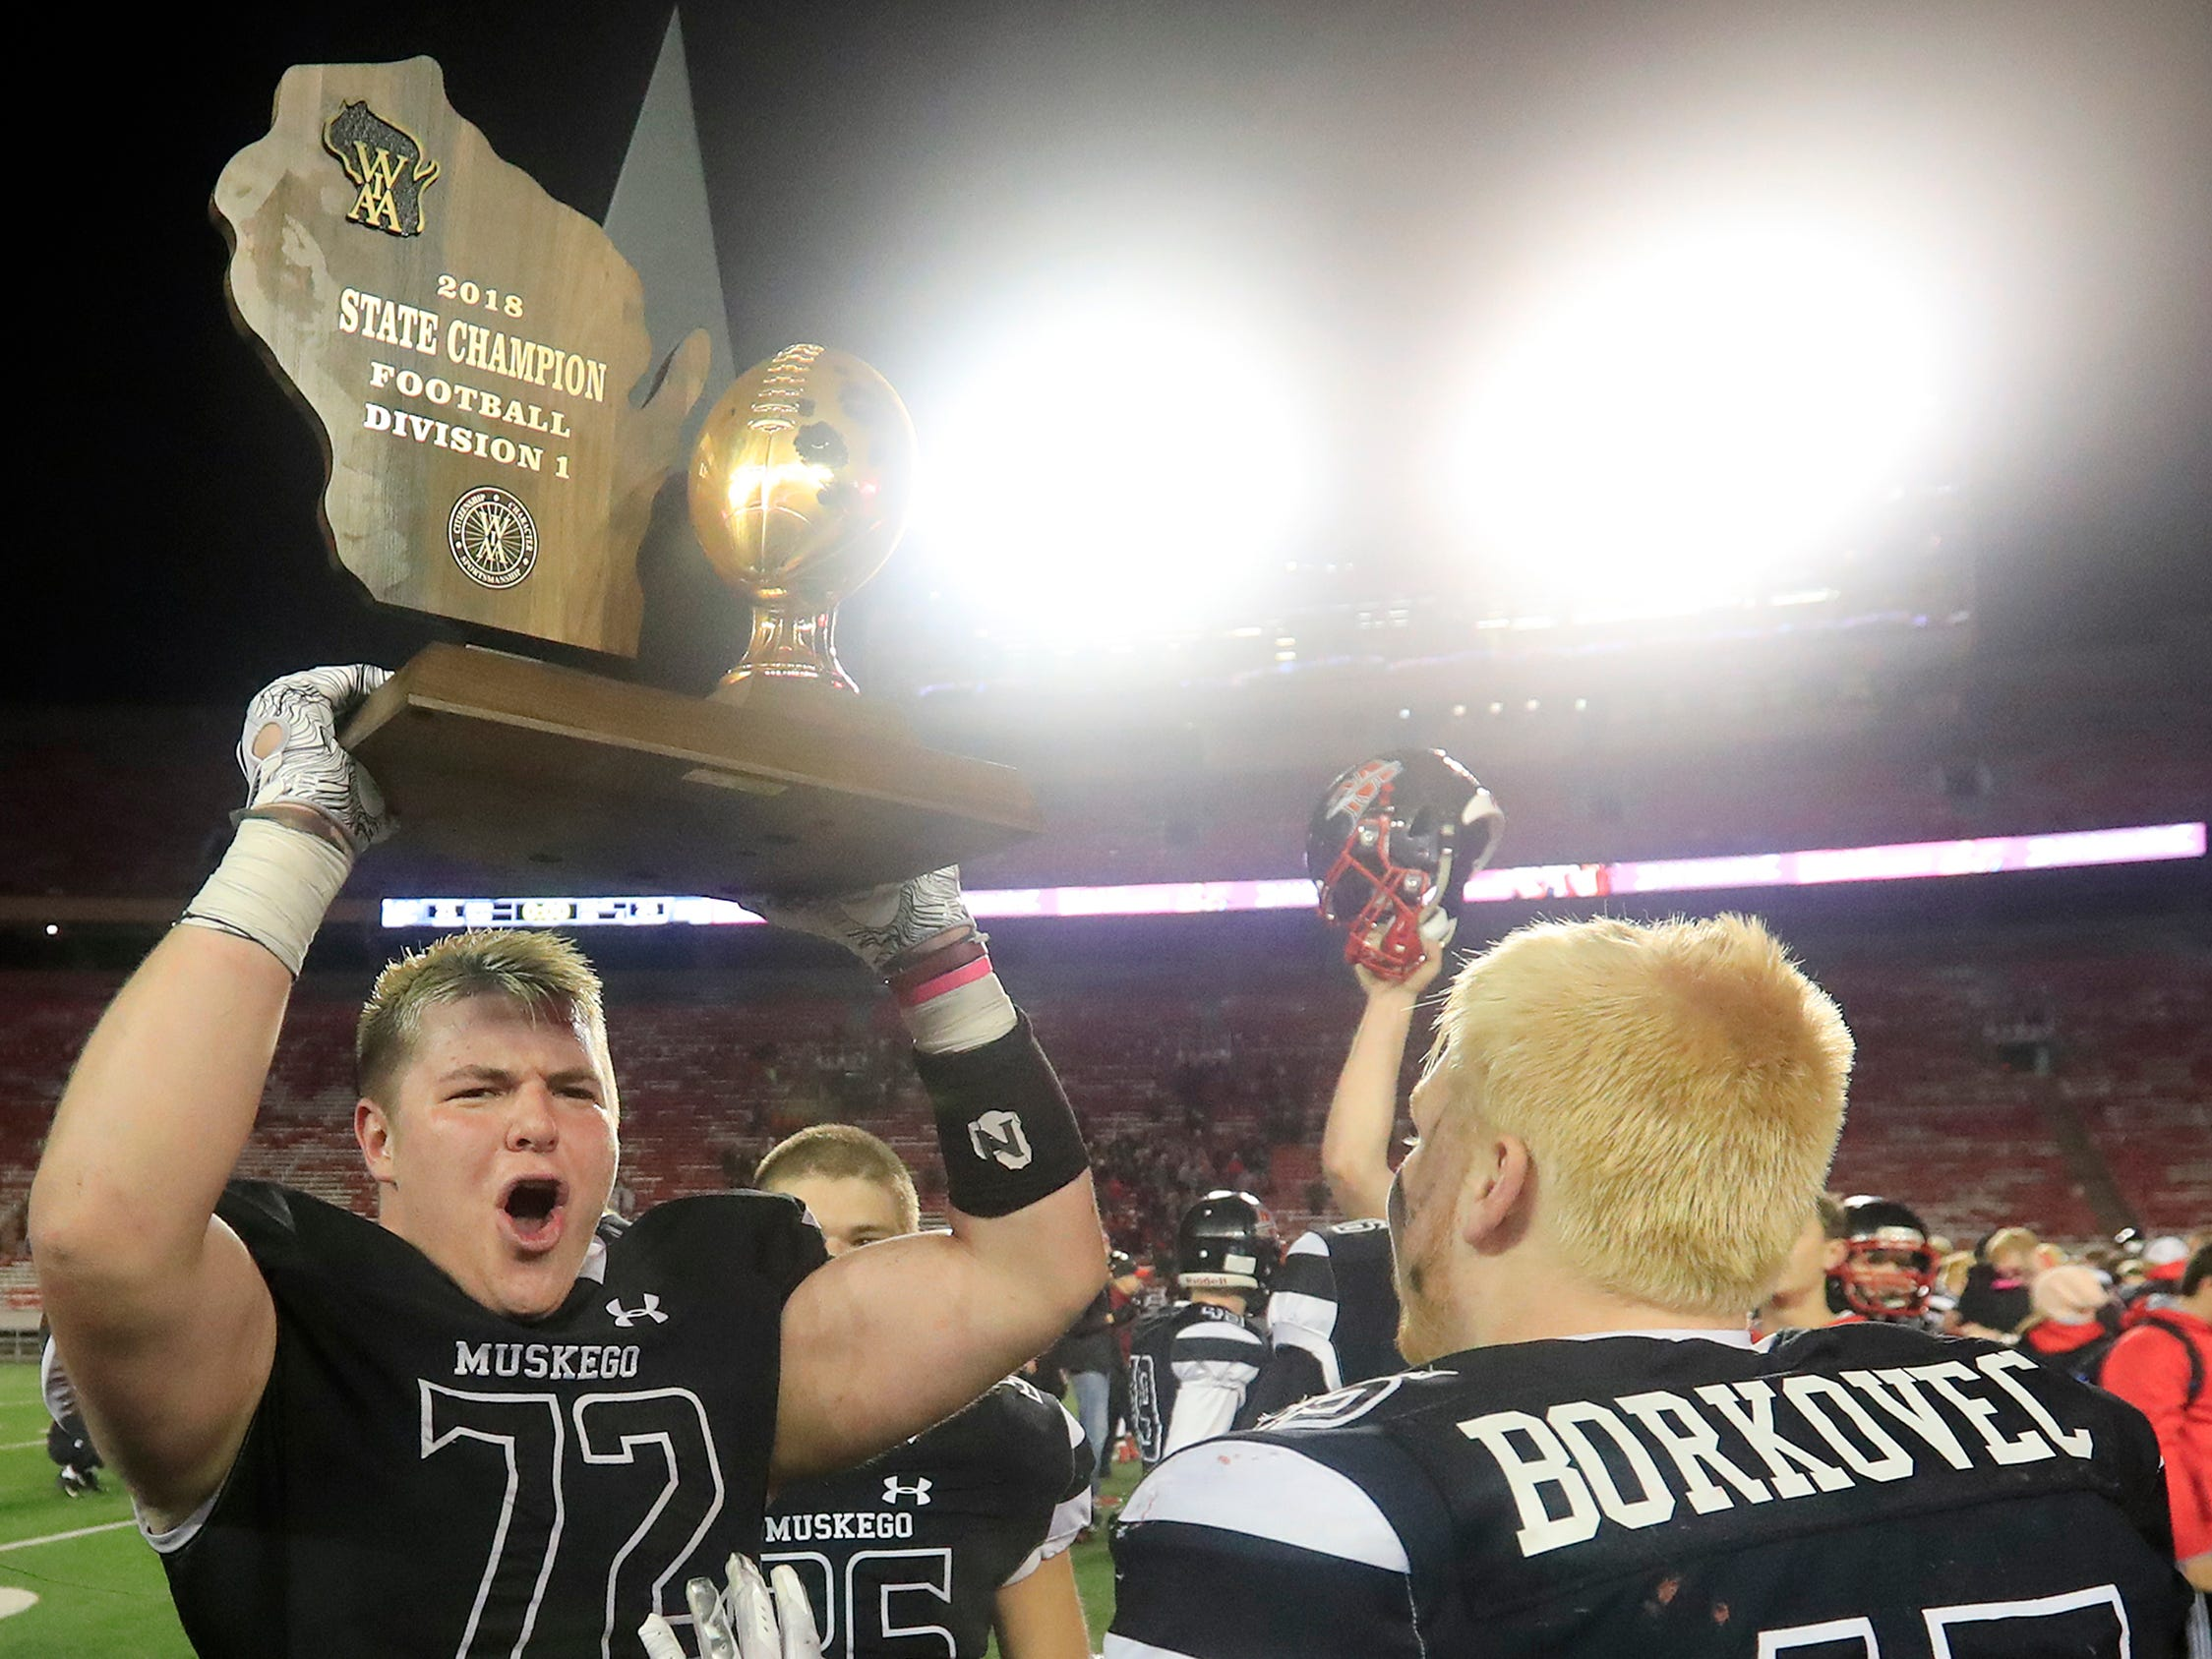 Muskego's Nathaniel Stewart (72) holds up the trophy after the Warriors defeated Kimberly to win the WIAA Division 1 championship game at Camp Randall Stadium on Friday, November 16, 2018 in Madison, Wis.